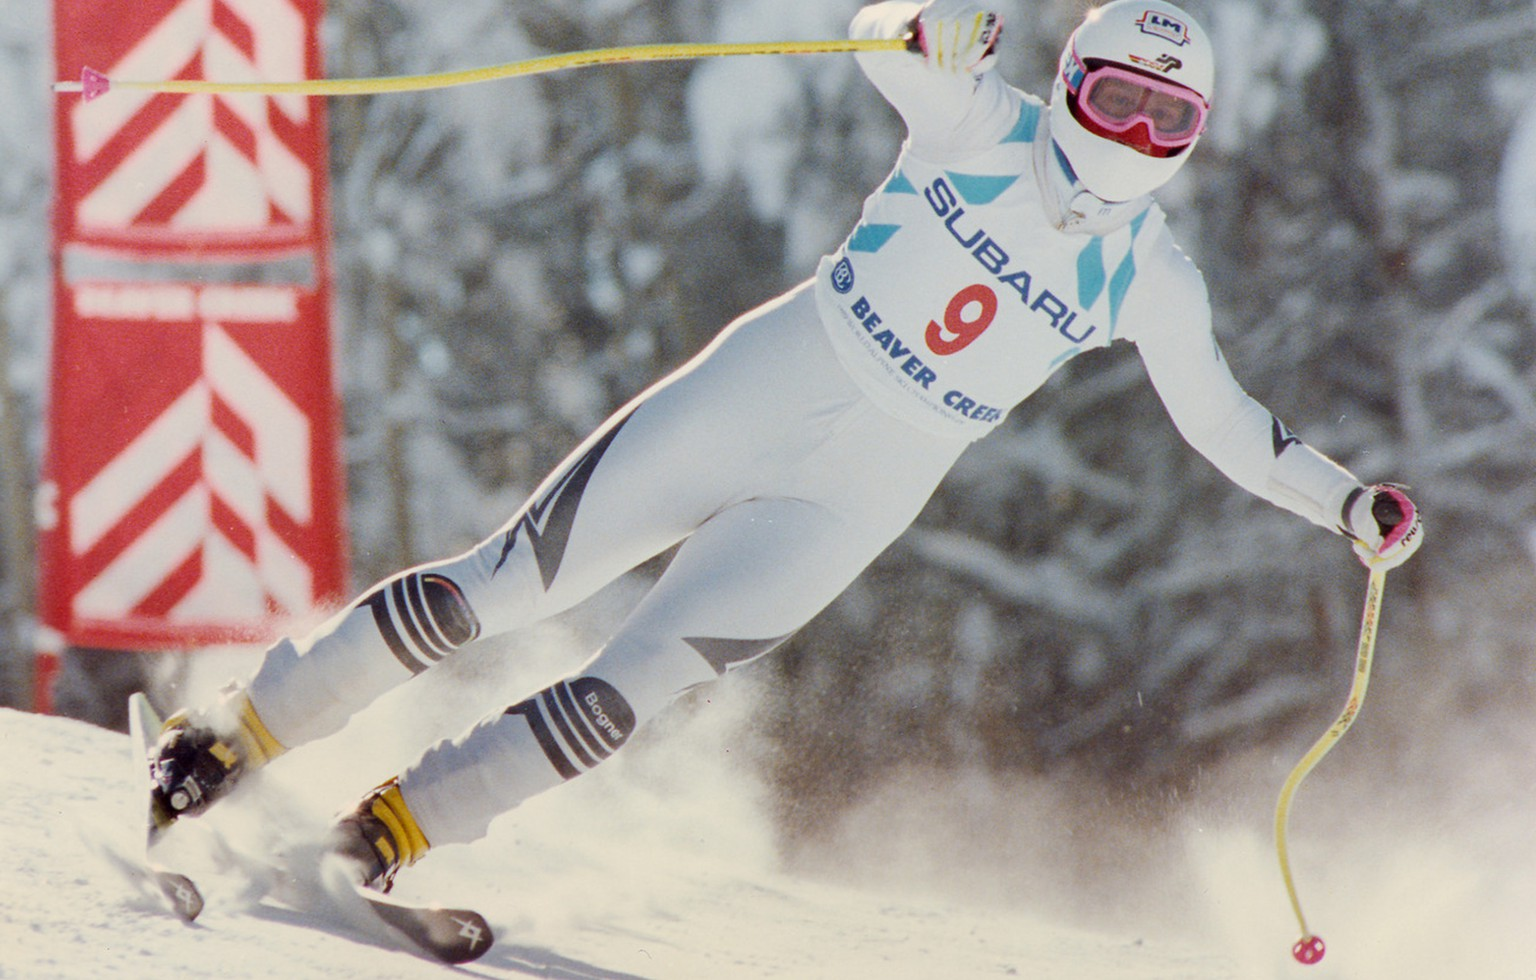 EN ROUTE TO GOLD: West Germany«s Hansjoerg Tauscher flies past a course gate on the men«s downhill Monday, Febr. 06, 1989, headed for a gold-medal victory in the World Alpine Ski Championships from Vail, Beaver Creek, Colo. (AP-Photo/stf/Diether Endlicher)